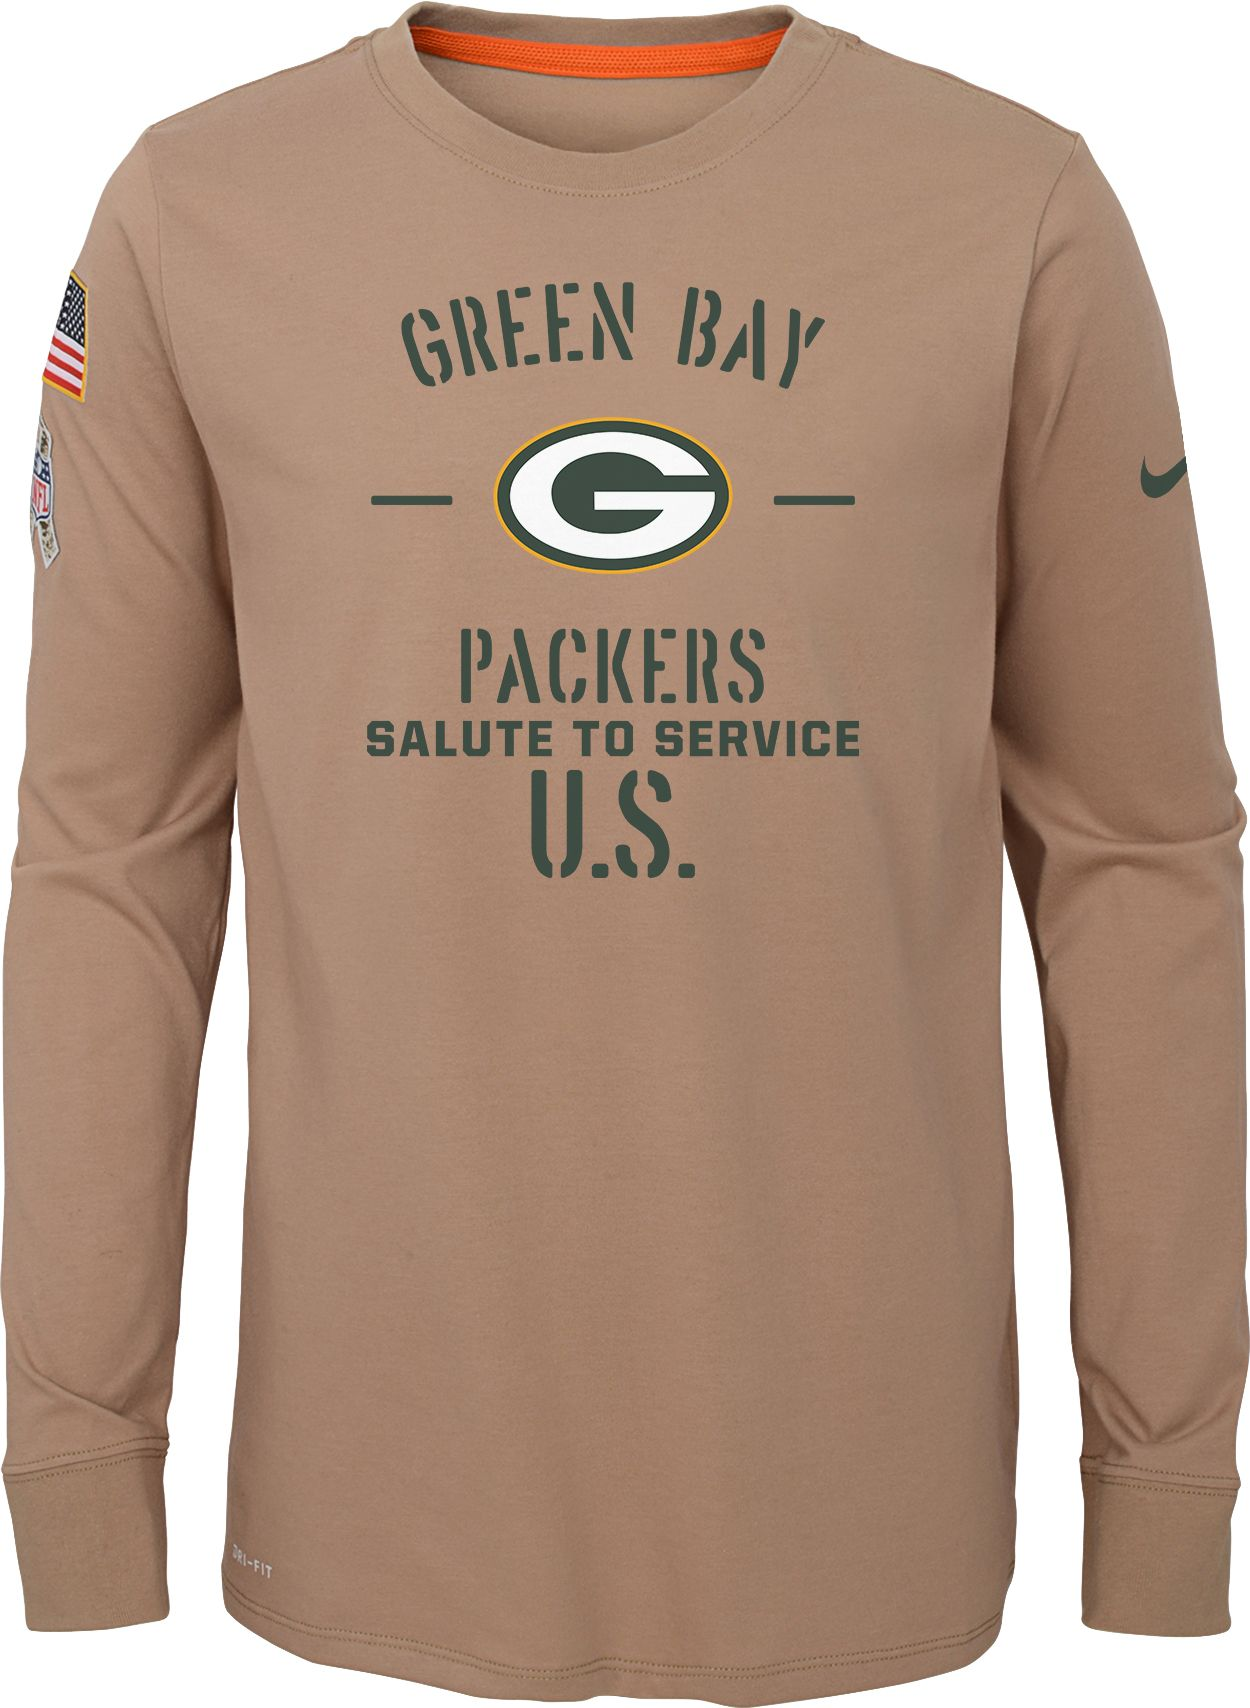 packers salute to service shirt